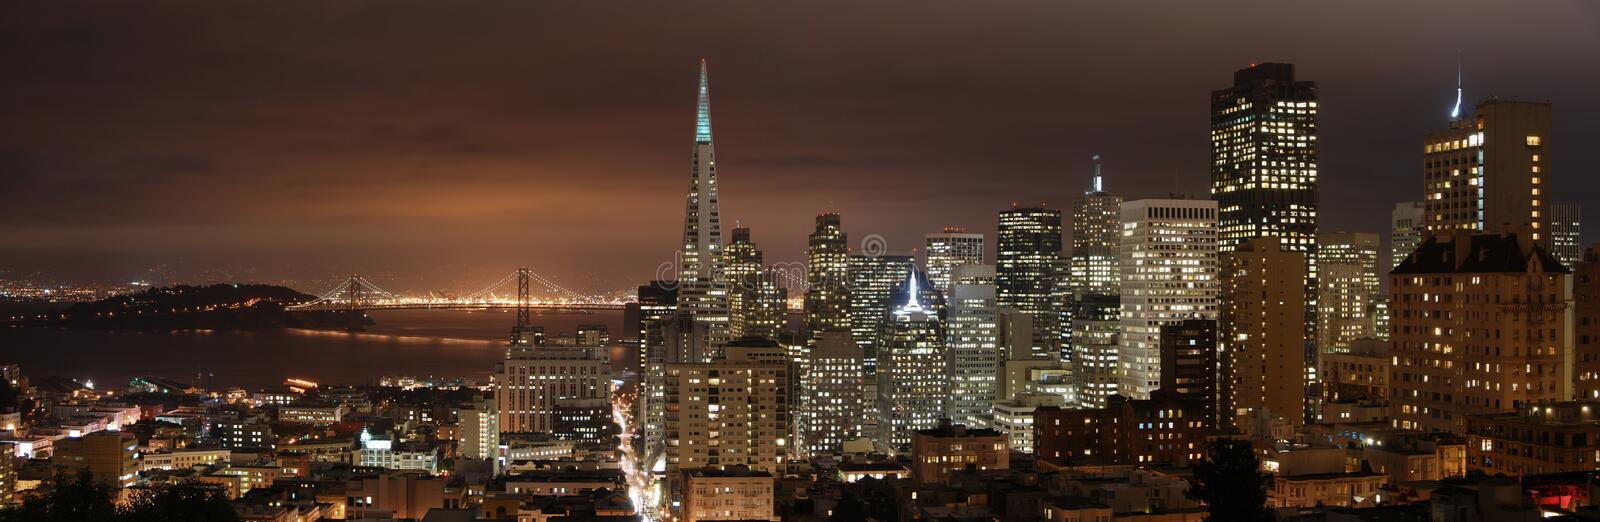 San Francisco - night Panorama royalty free stock image